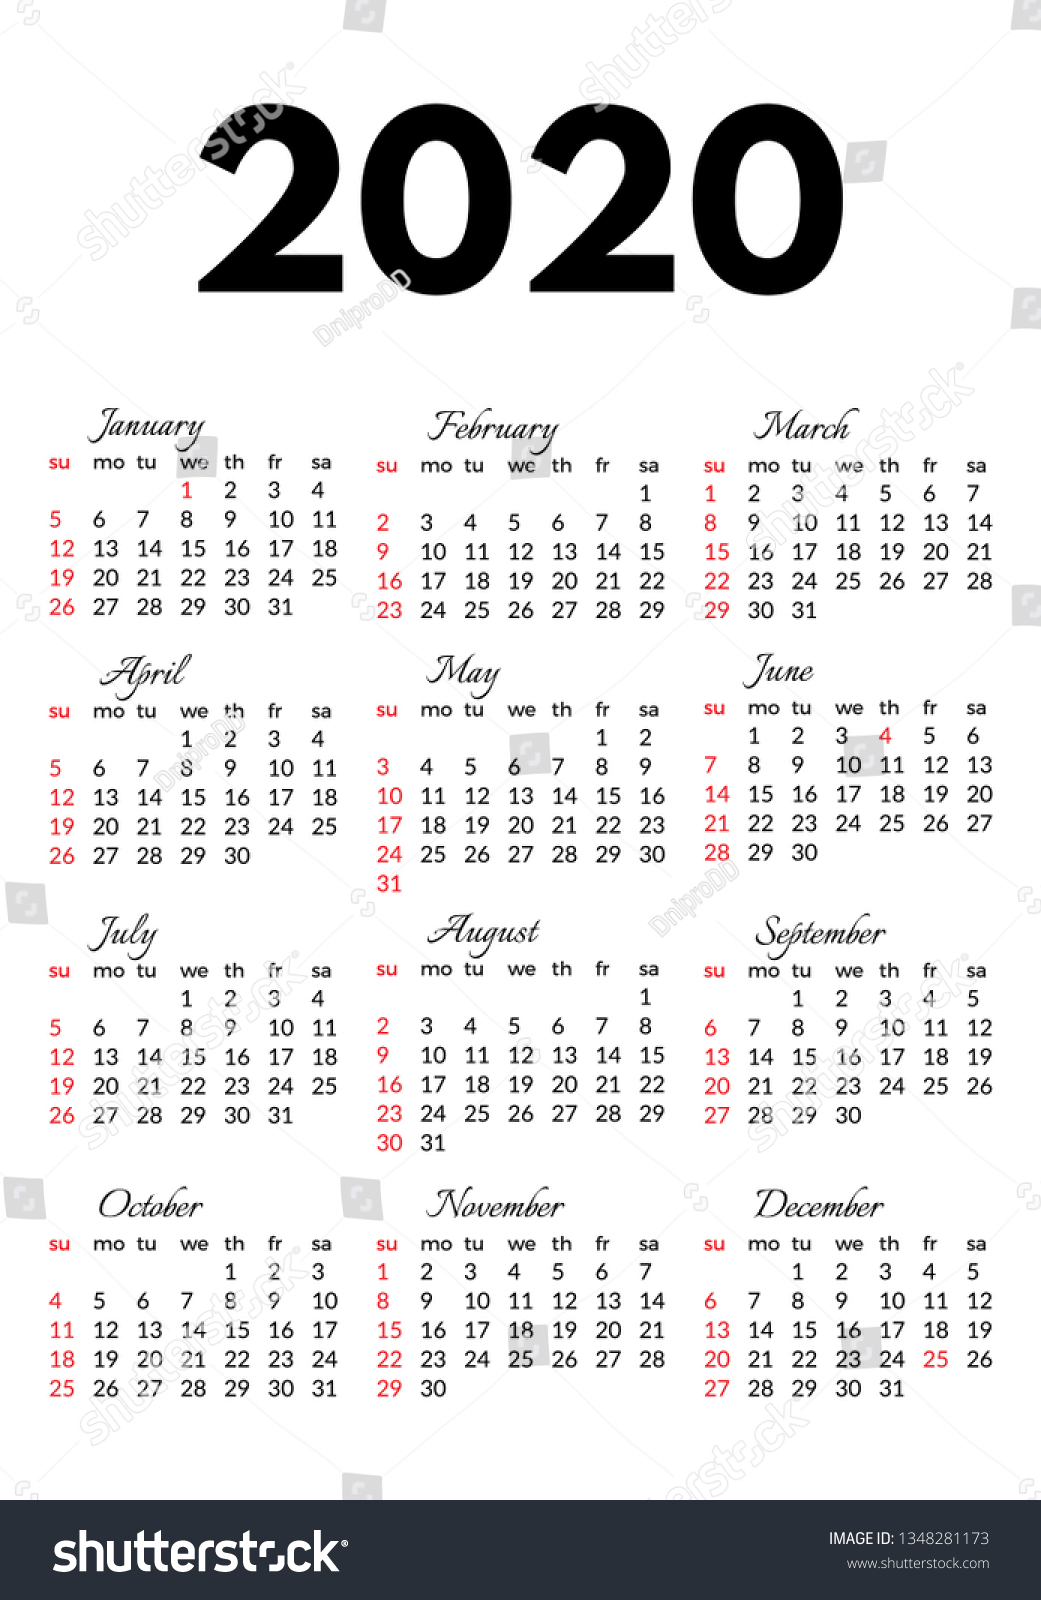 Calendar 2020 Isolated On White Background Stock Vector